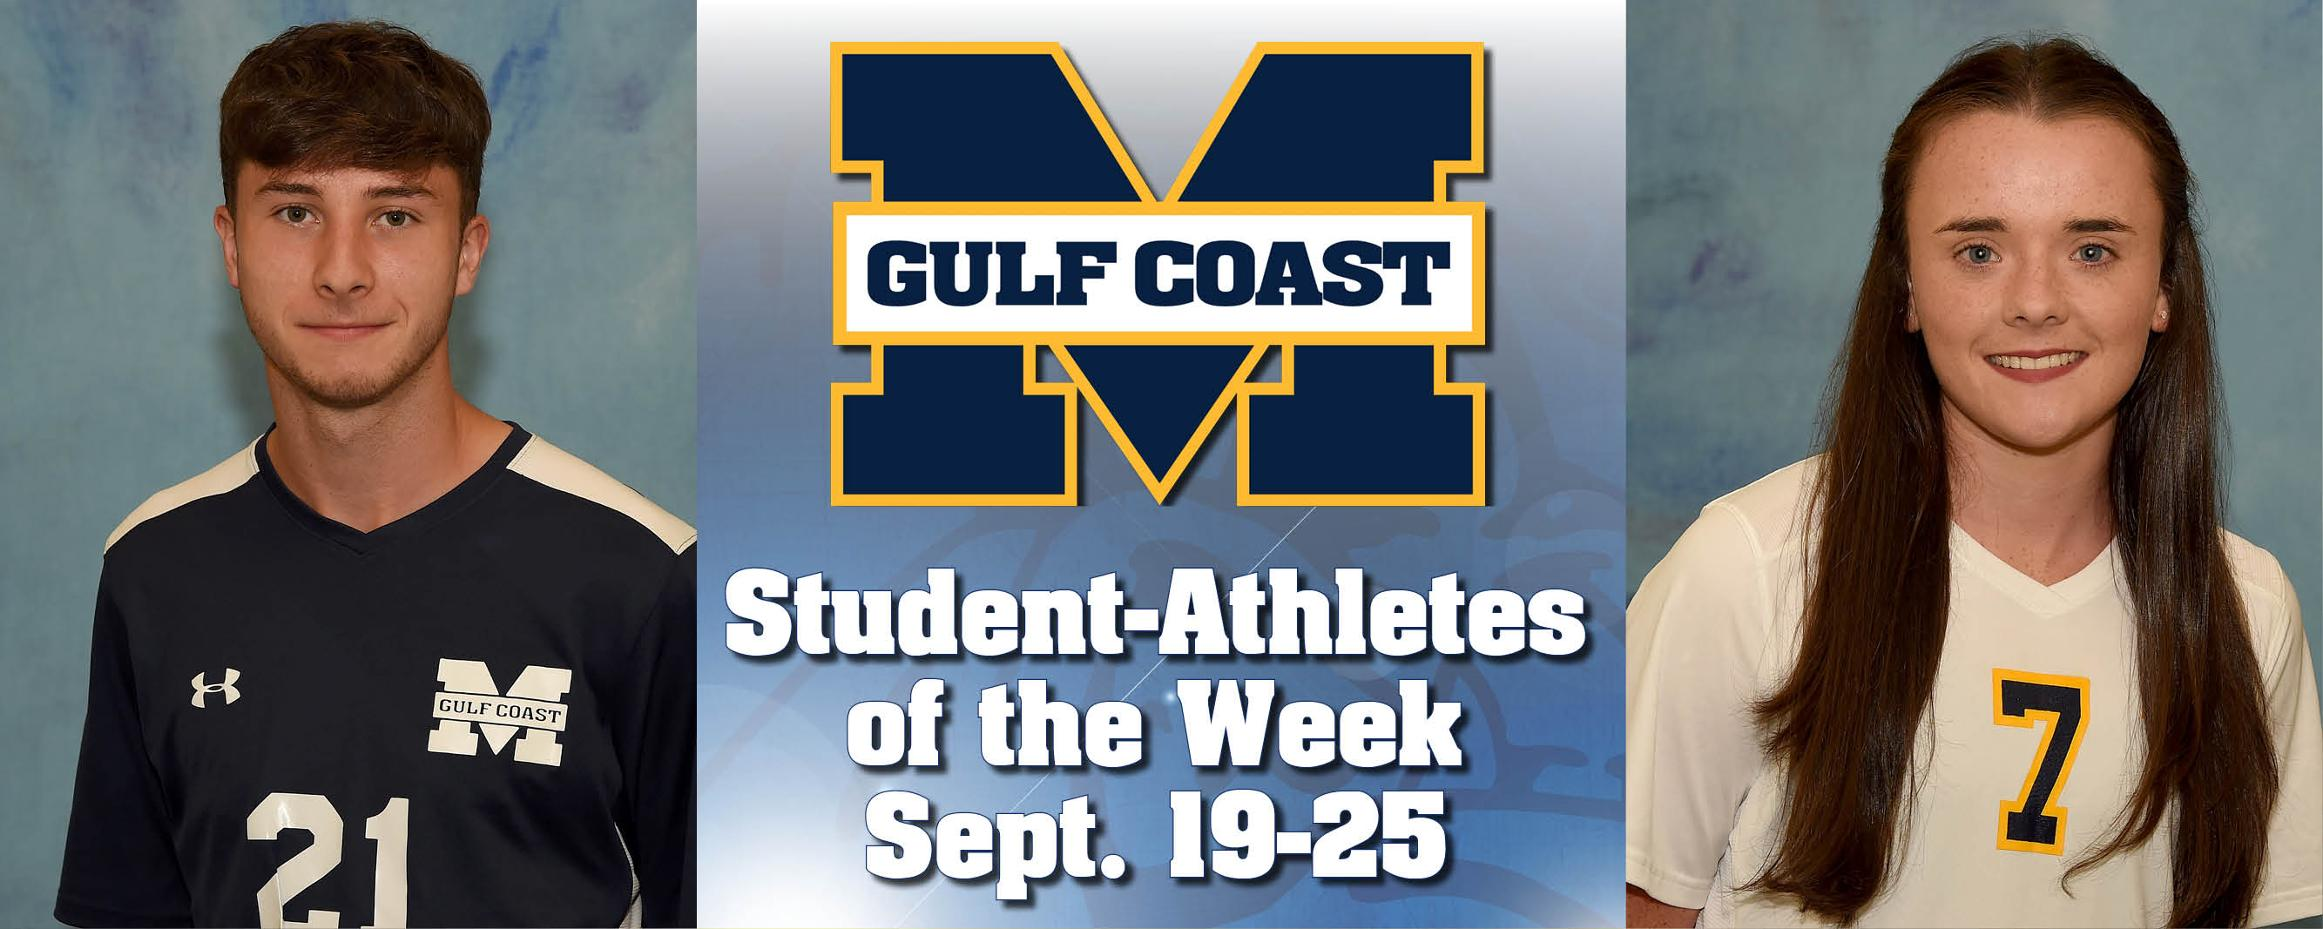 Eadsforth, Longsden named MGCCC Student-Athletes of the Week